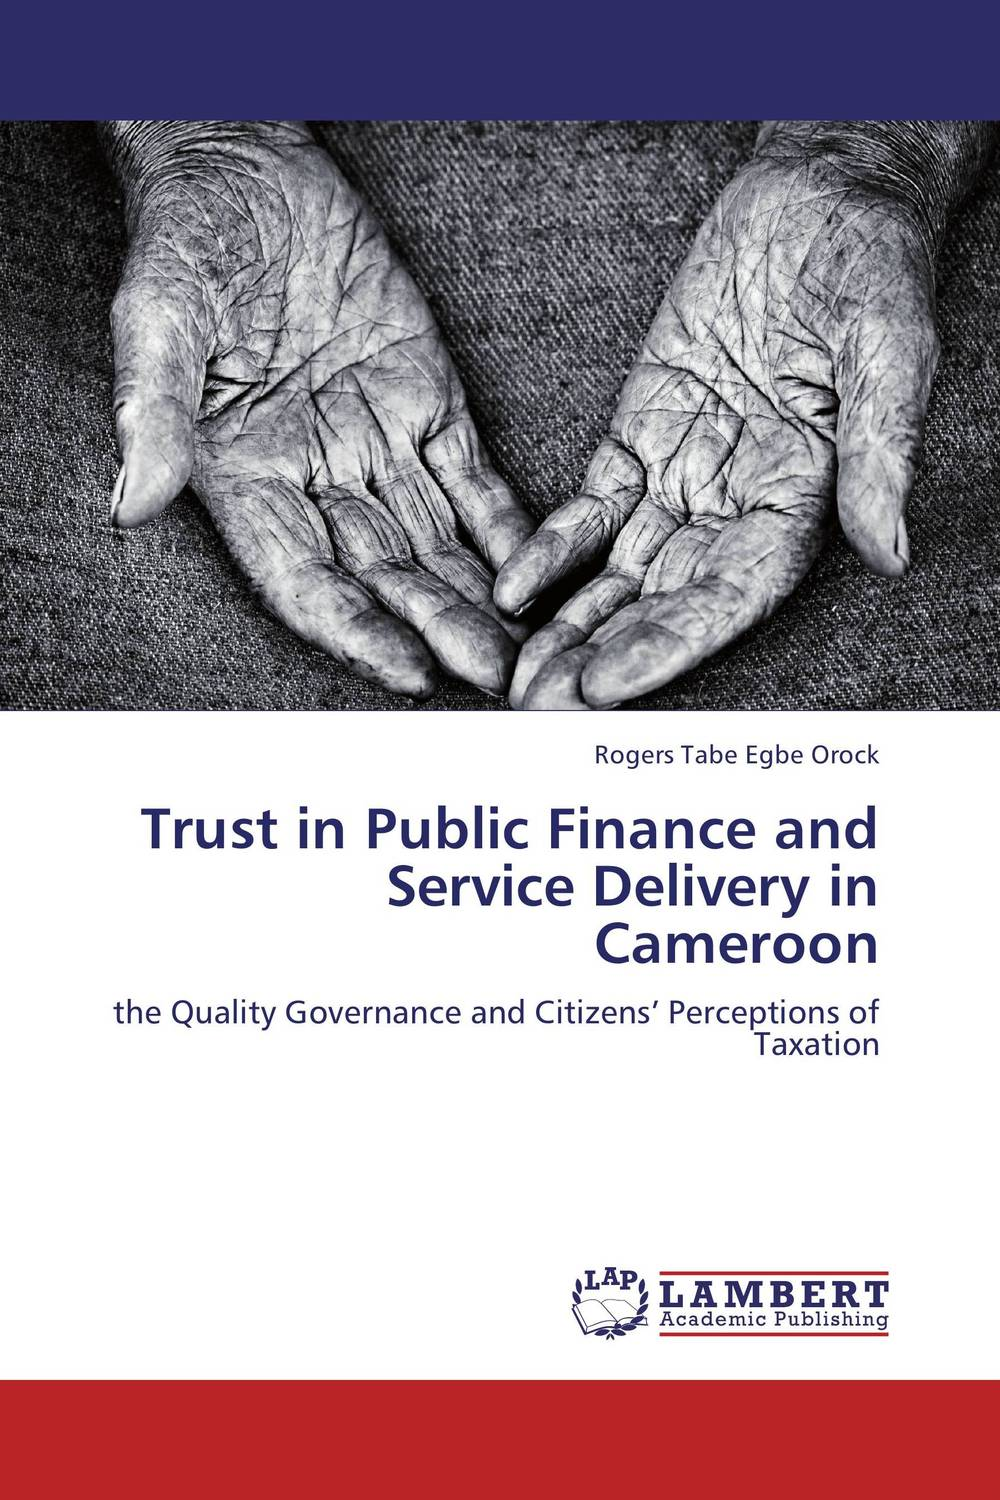 Trust in Public Finance and Service Delivery in Cameroon corporate governance and firm value